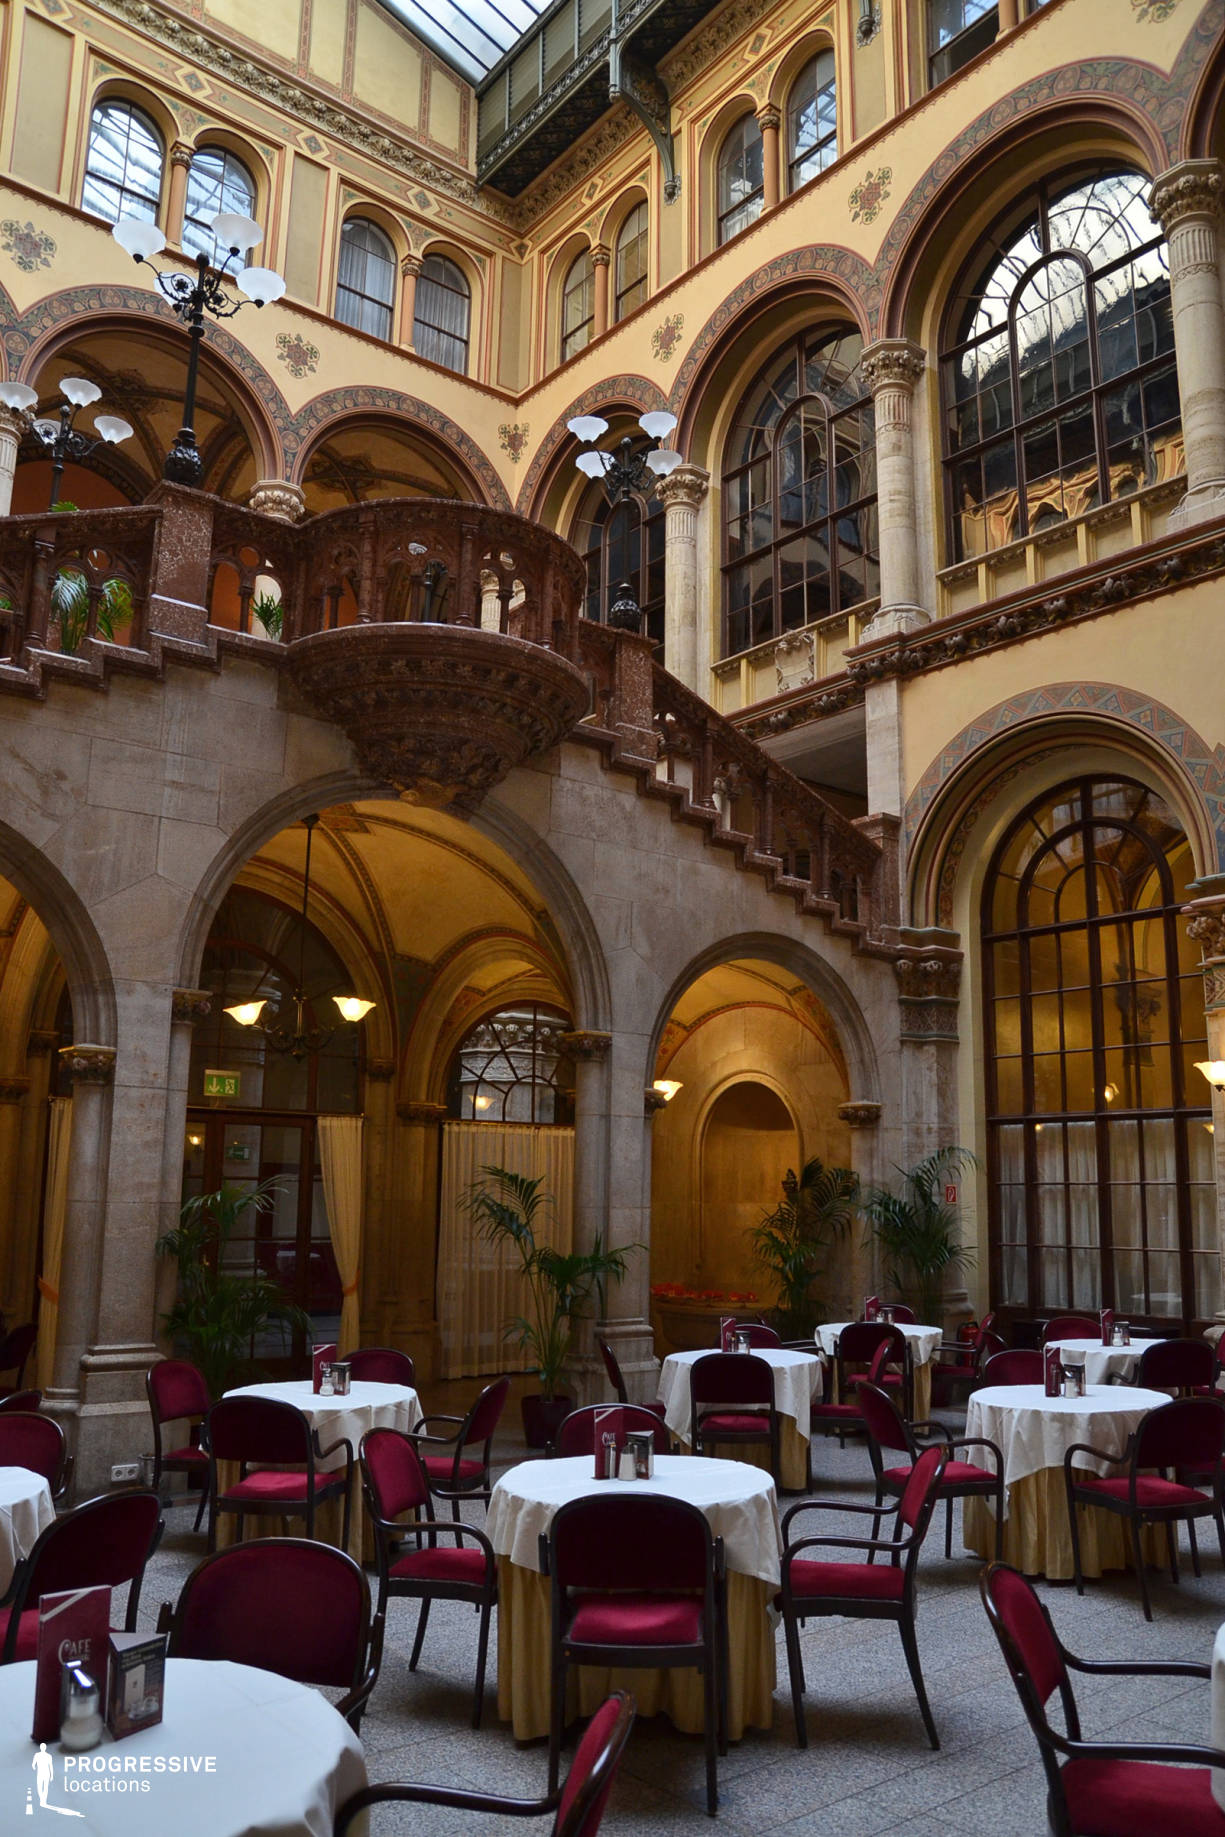 Locations in Austria: Court, Cafe Central